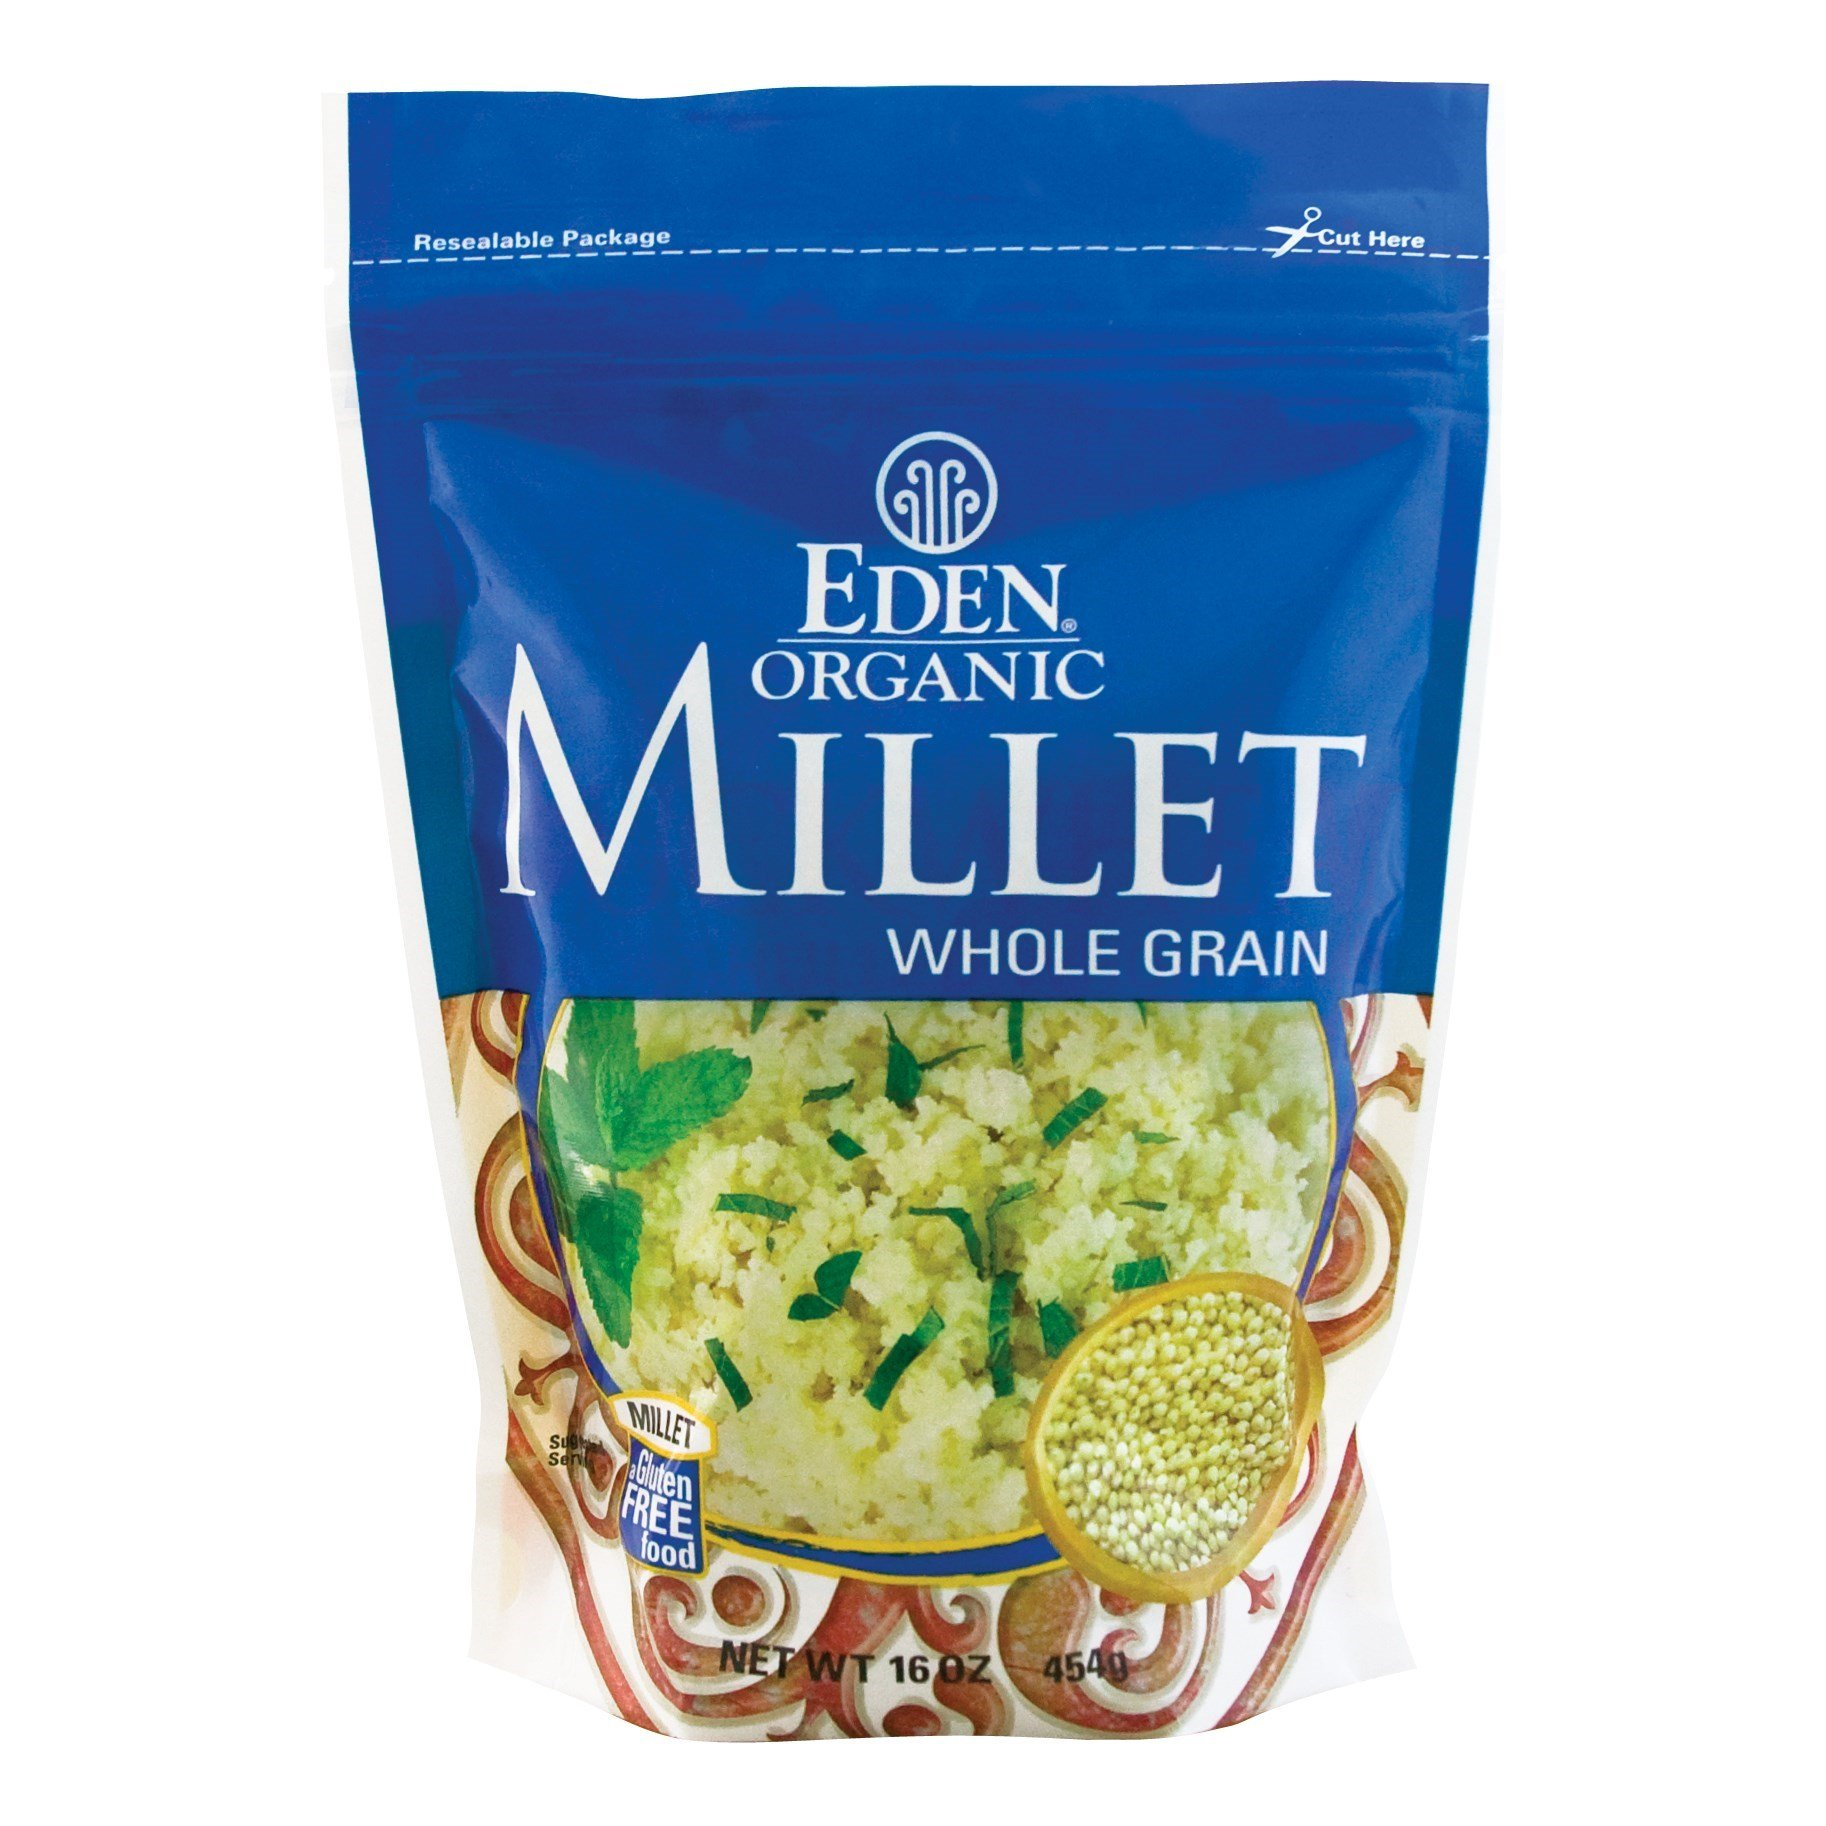 EDEN Millet, Whole Grain,16 -Ounce Pouches (Pack of 12)